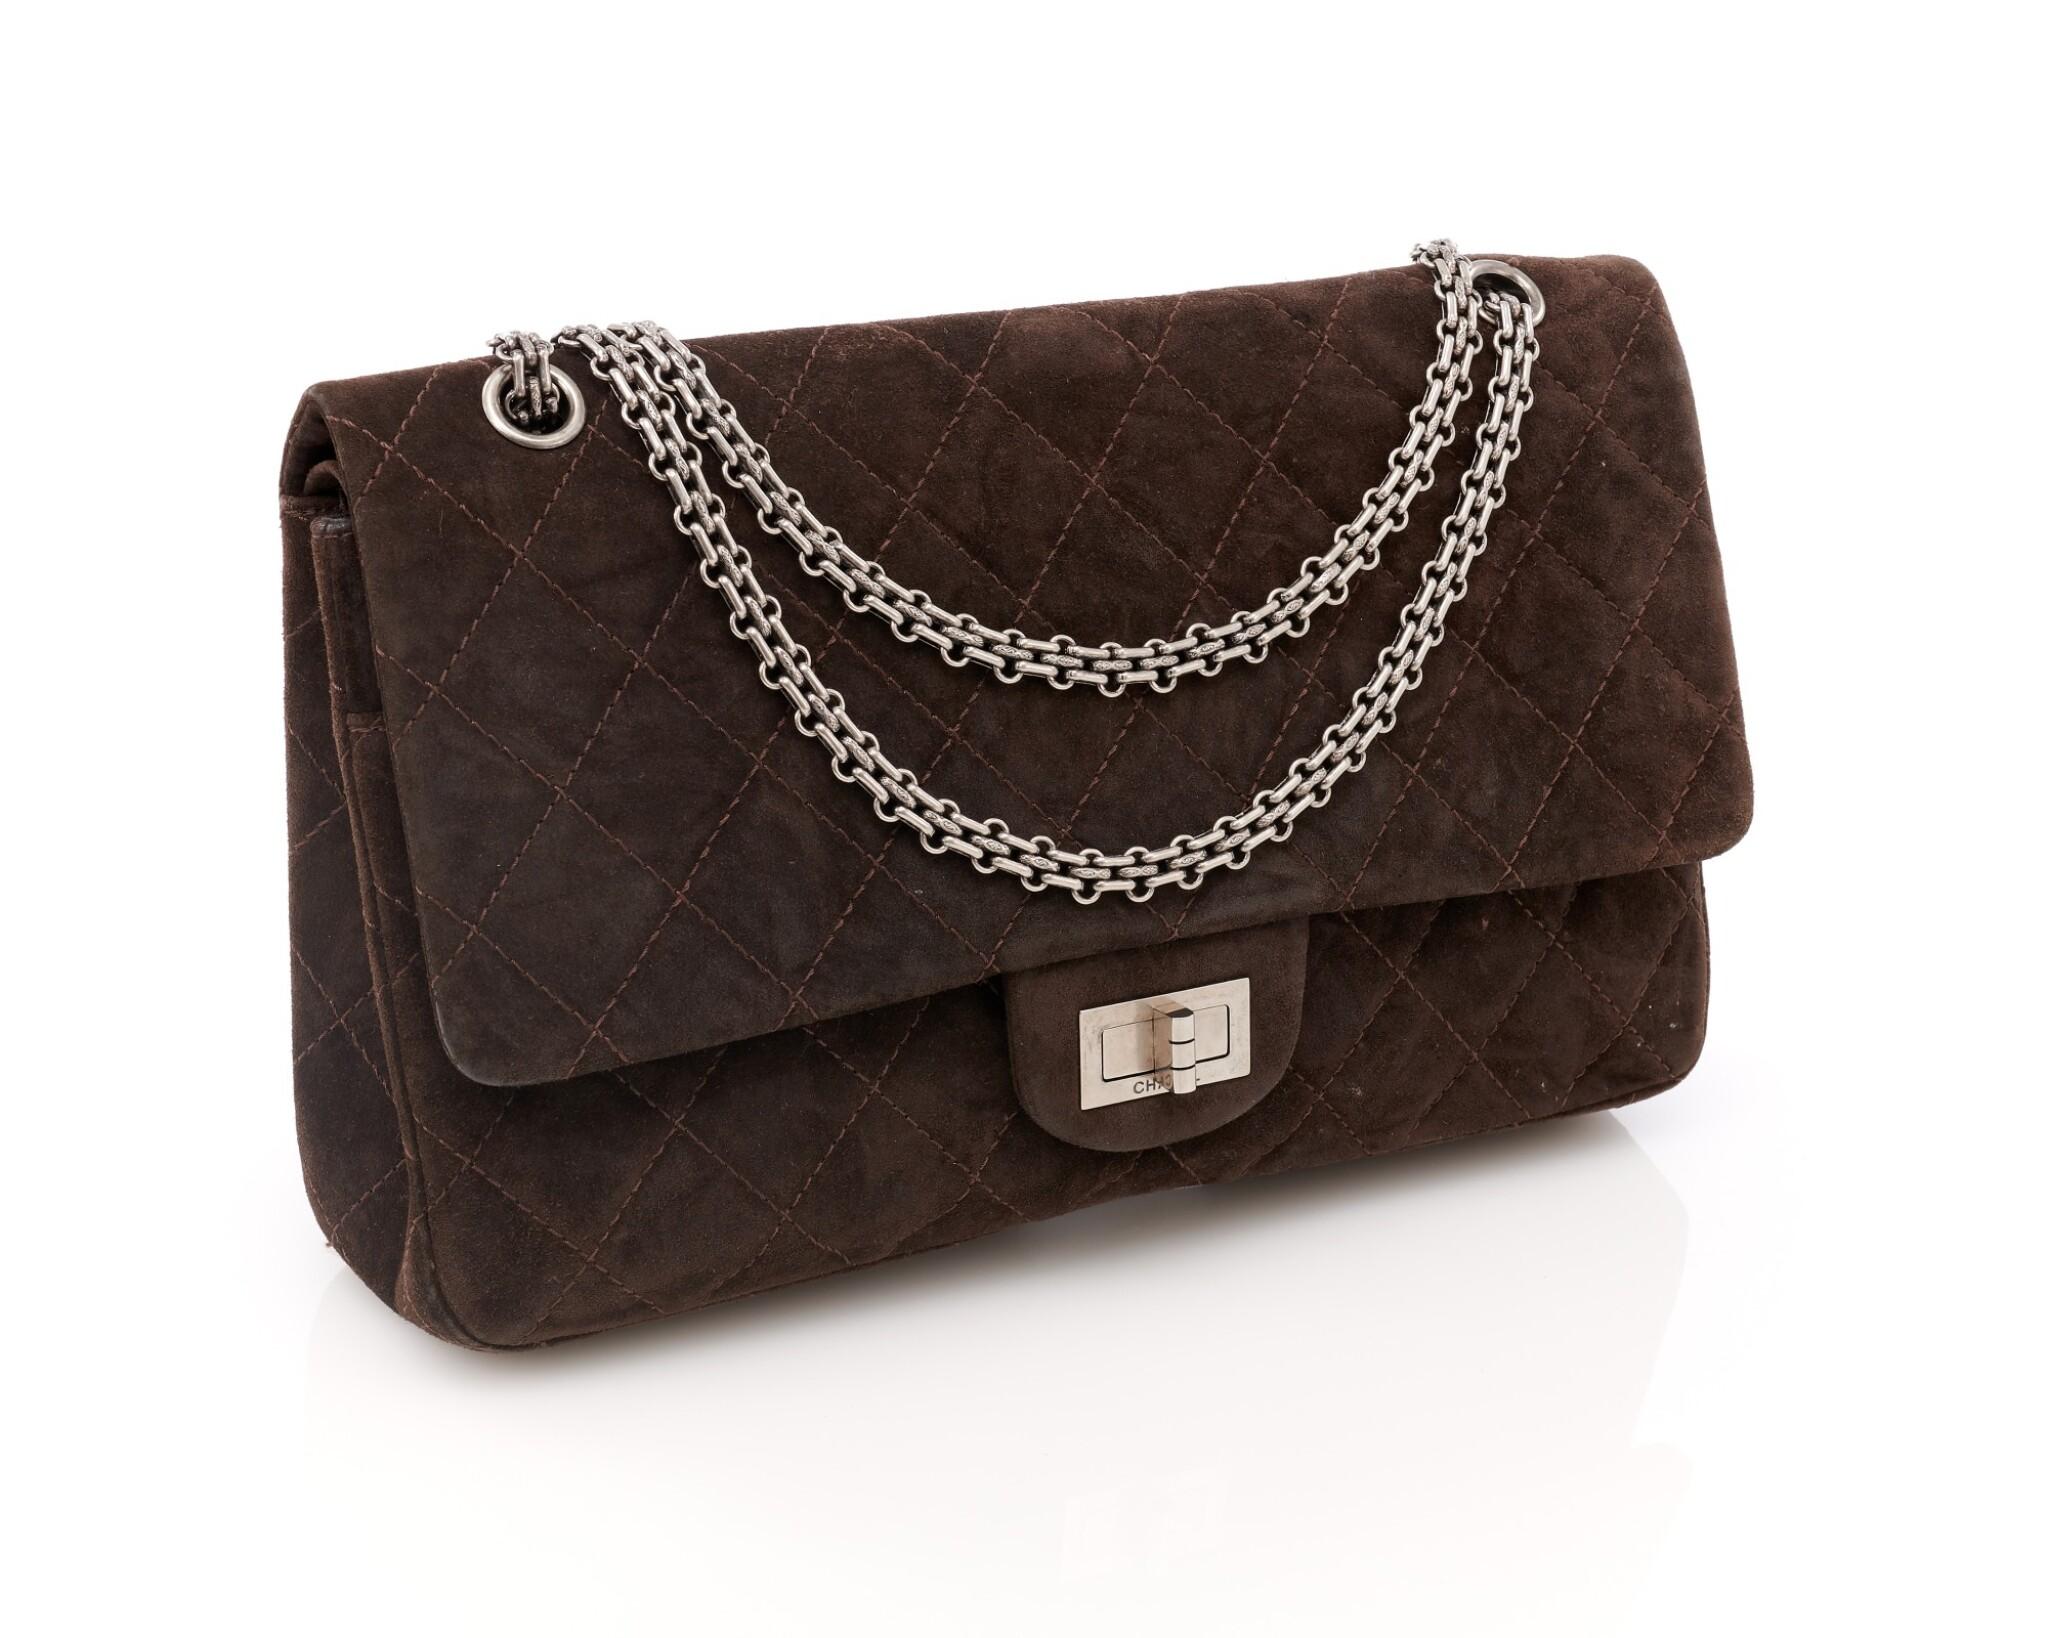 View full screen - View 1 of Lot 61. Dark brown suede leather and silver-tone metal 2.55 reissue shoulder bag.